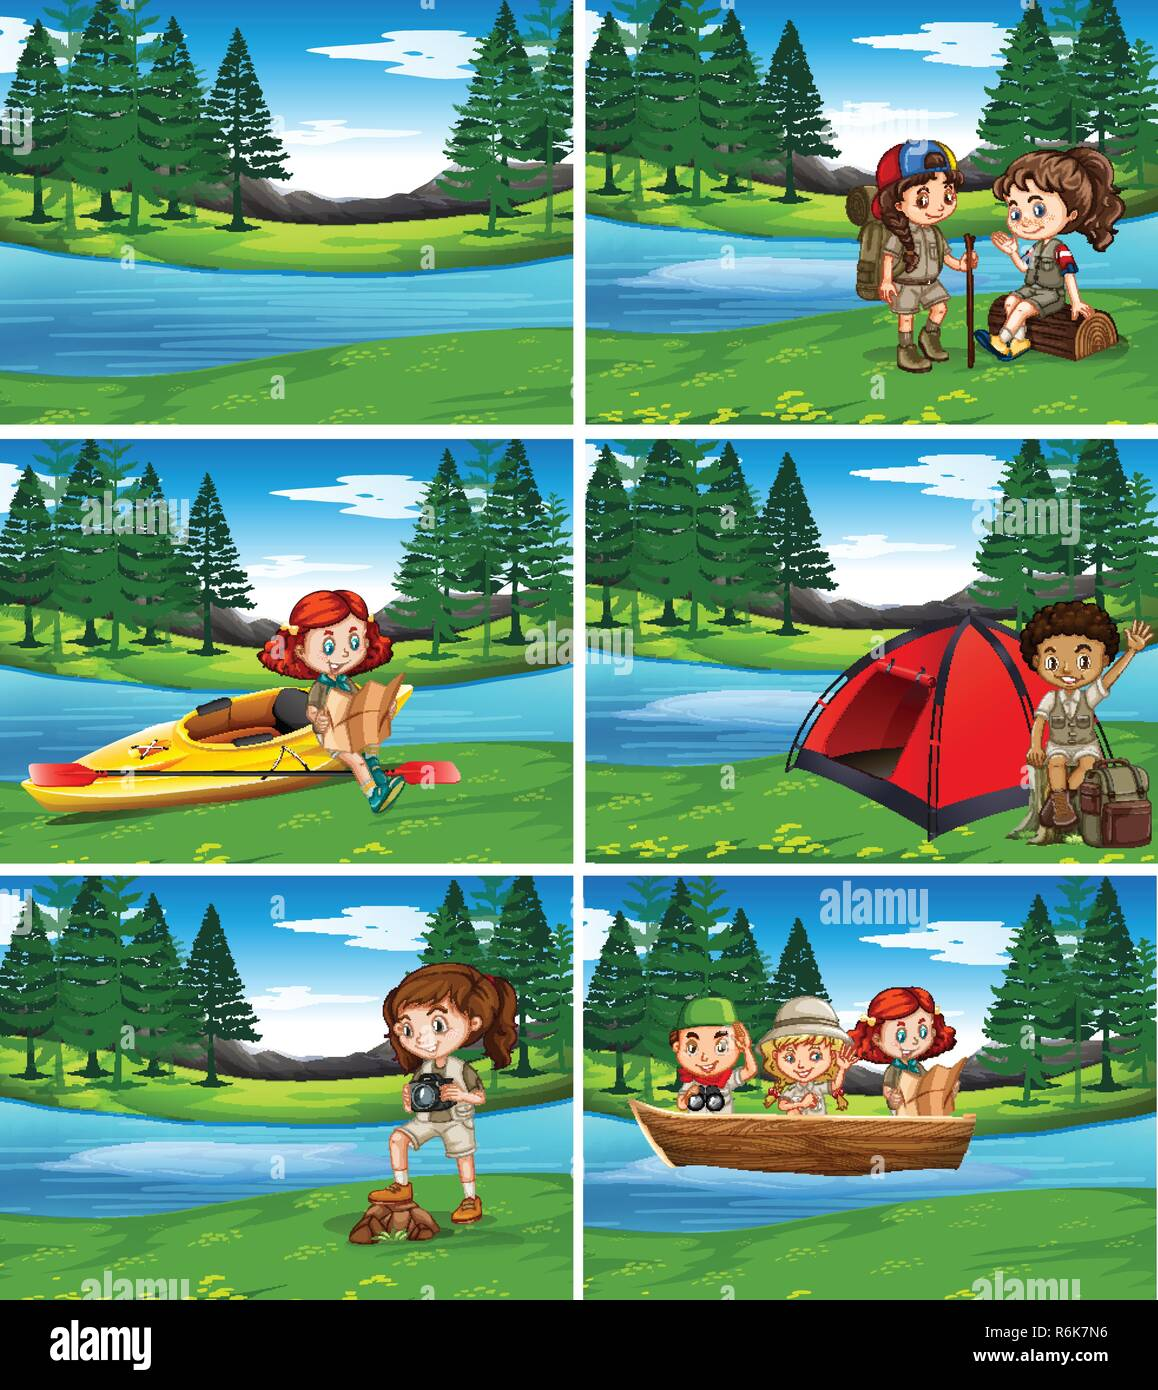 Camping kids in the nature illustration - Stock Vector